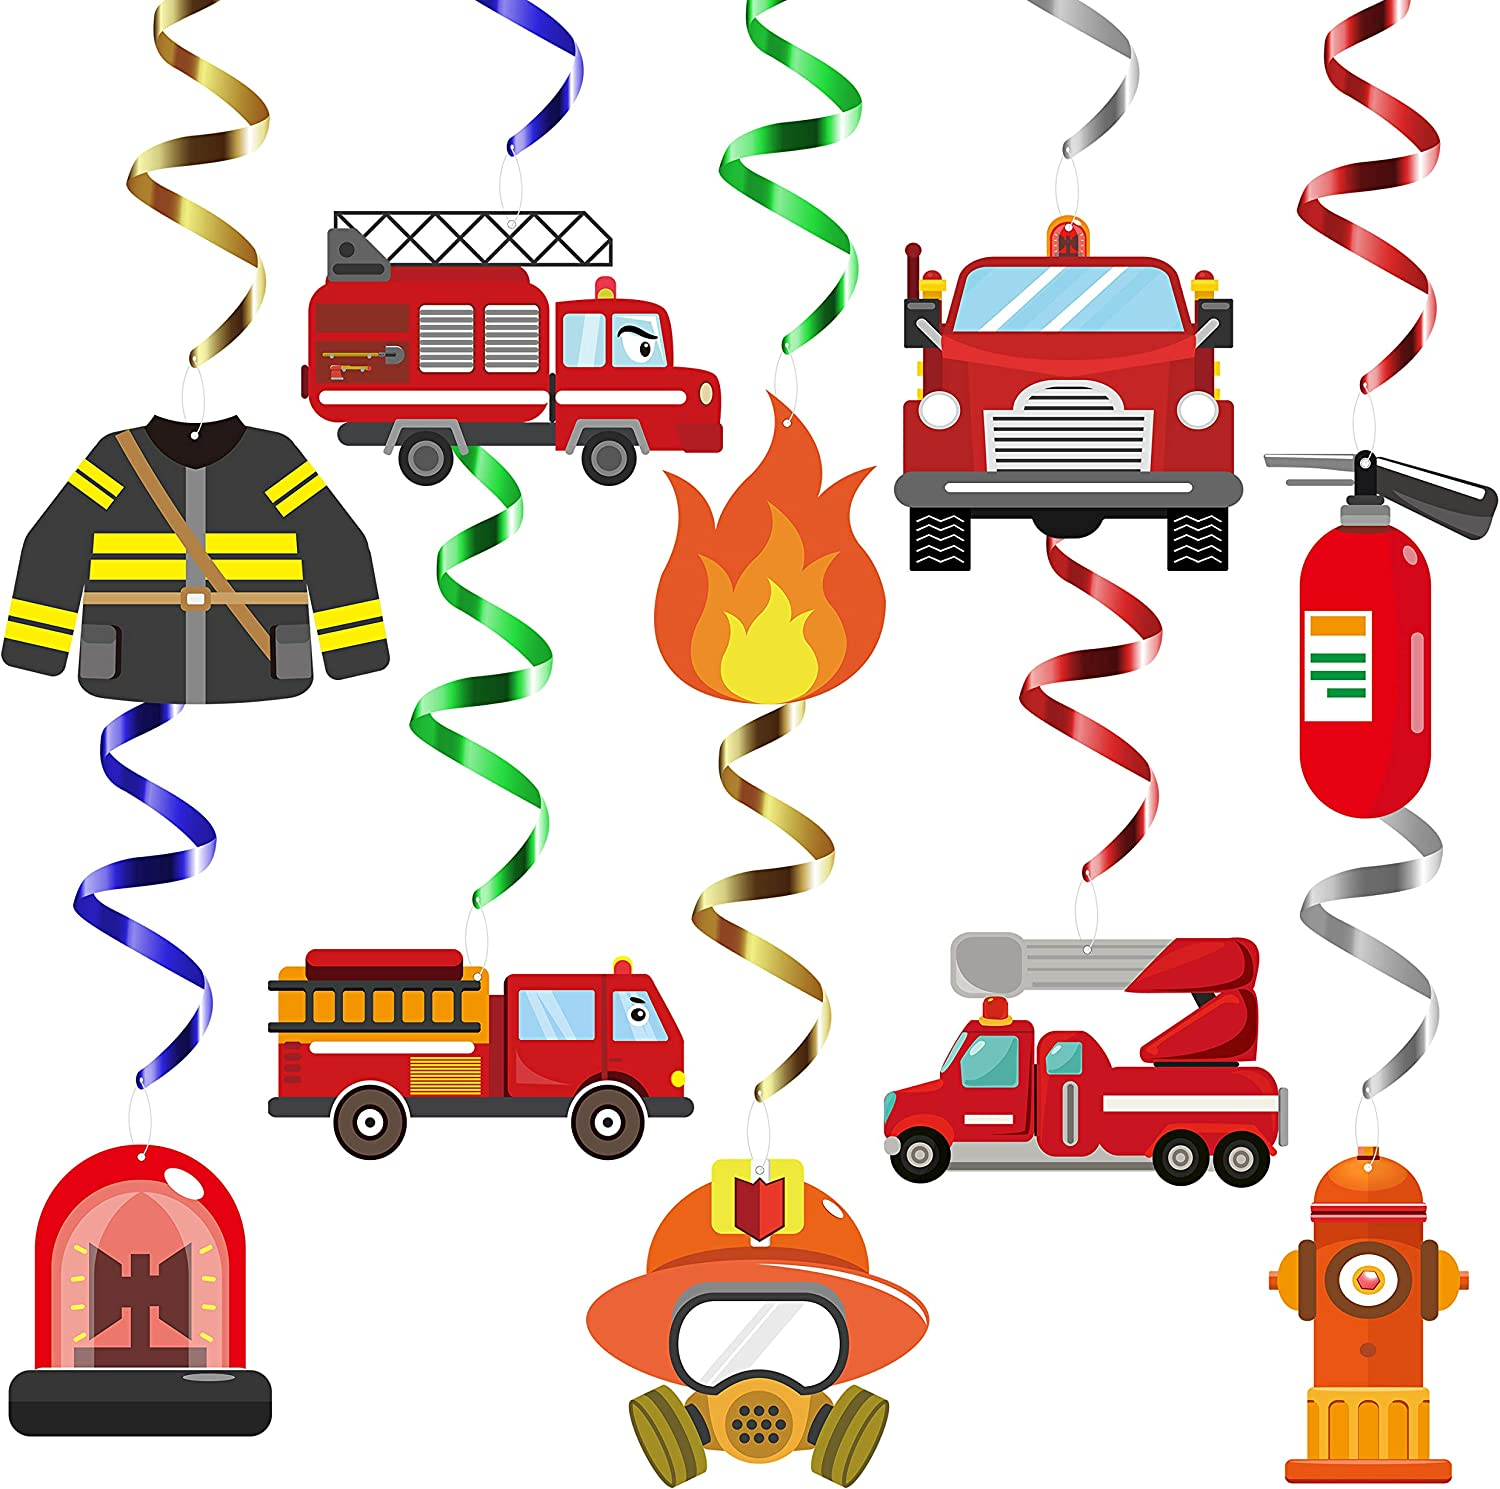 MALLMALL6 30Pcs Fire Truck Swirls Decorations Fireman Hanging Whirl Streamers Party Supplies Firetruck Fire Hat Home Decorations Fire Engine Ceiling Spiral Room Decor for Kids Fire Theme Birthday